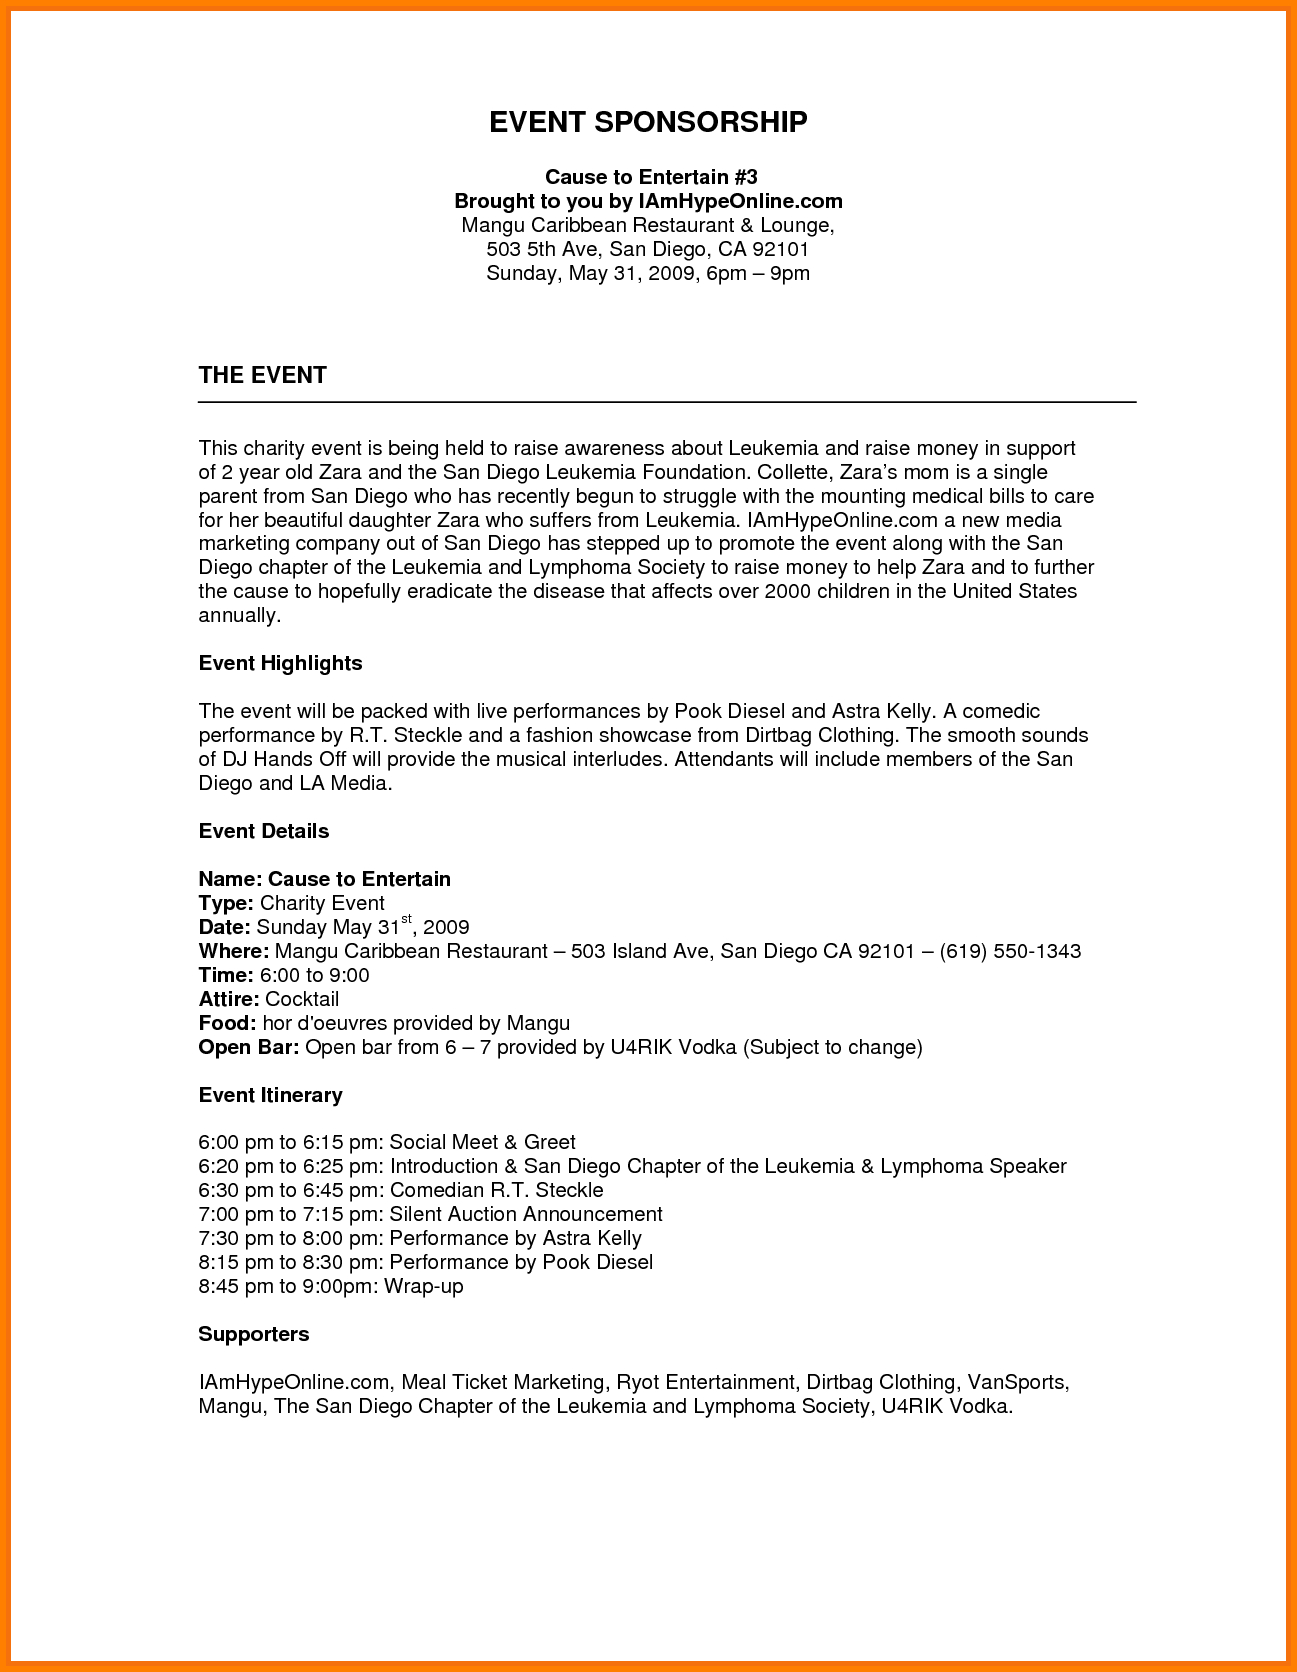 event sponsorship letter template Collection-Image result for sponsorship proposal template FinanceTemplate Finance 14-b